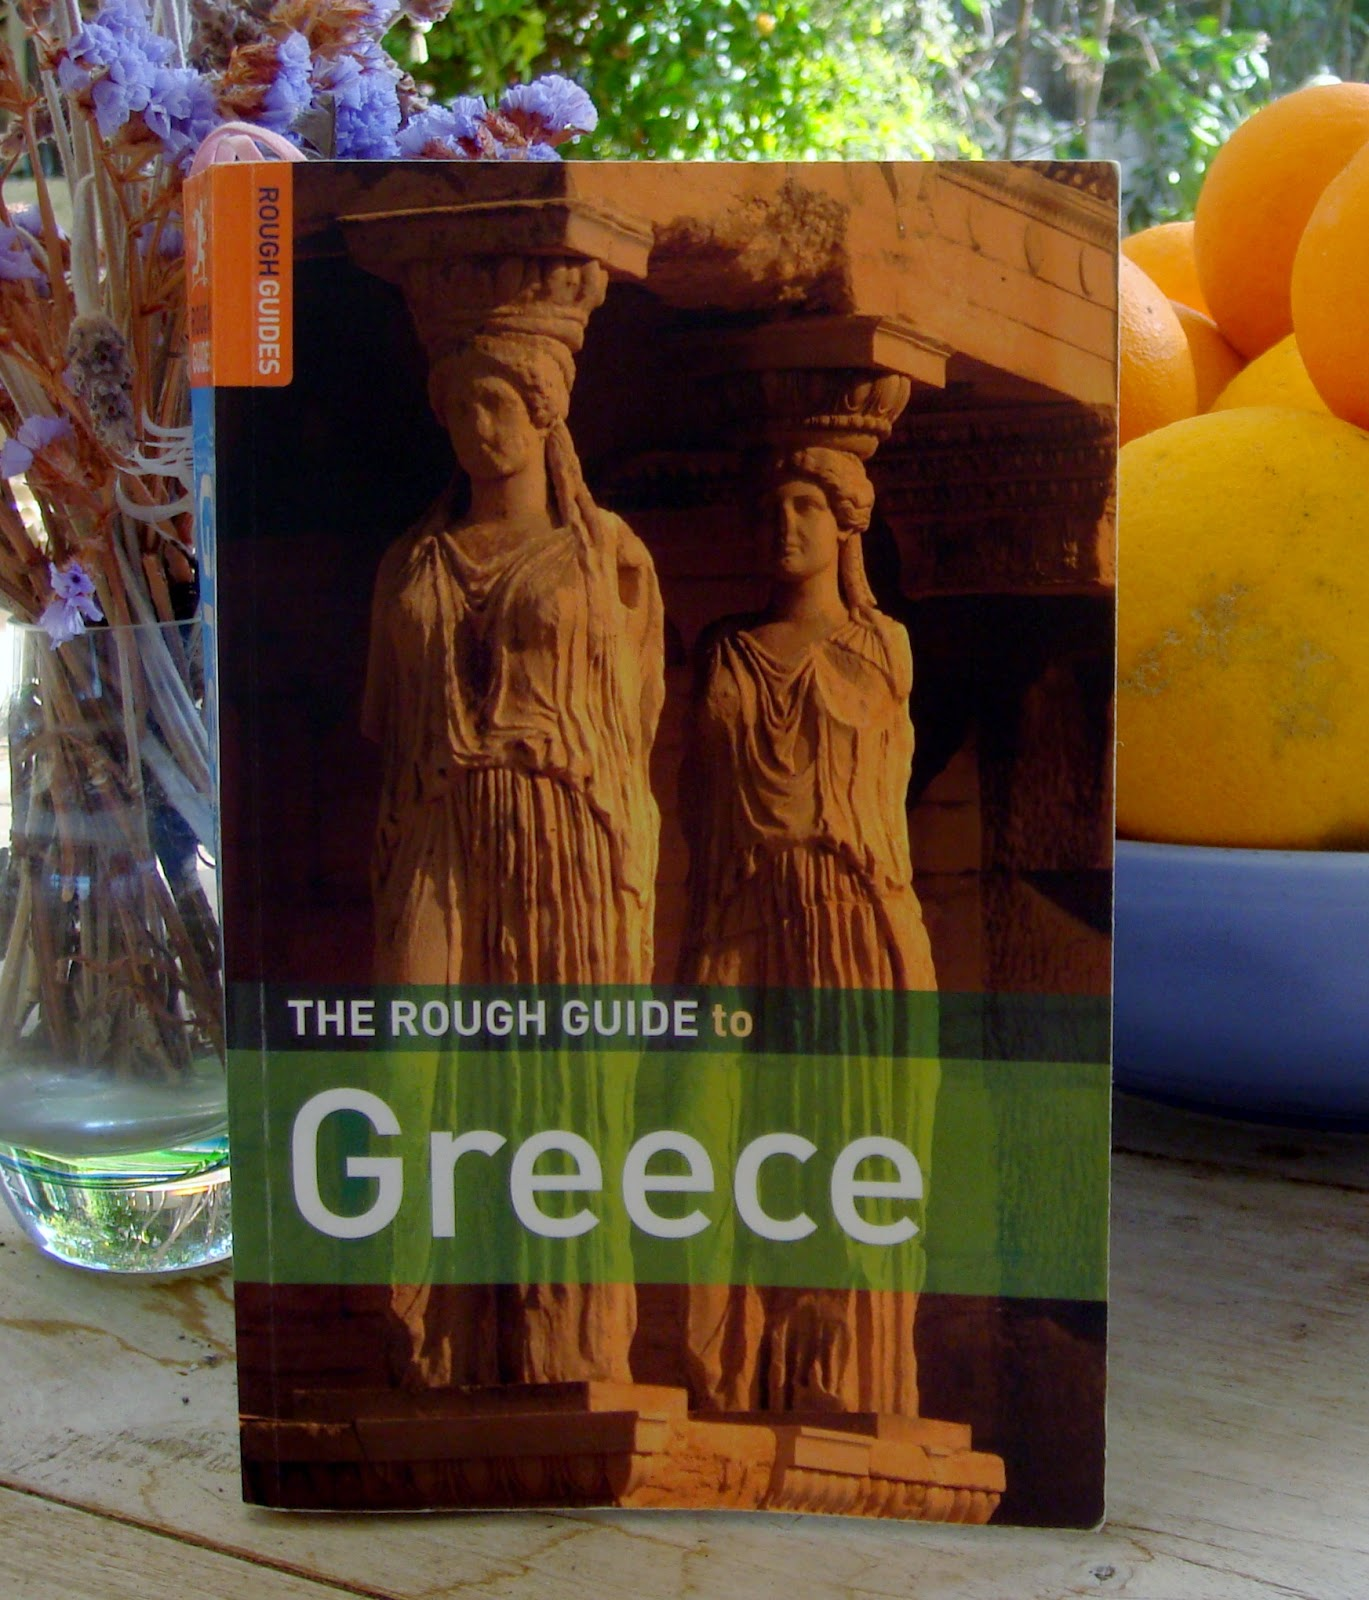 Ten tips on how to get to know the real Greece